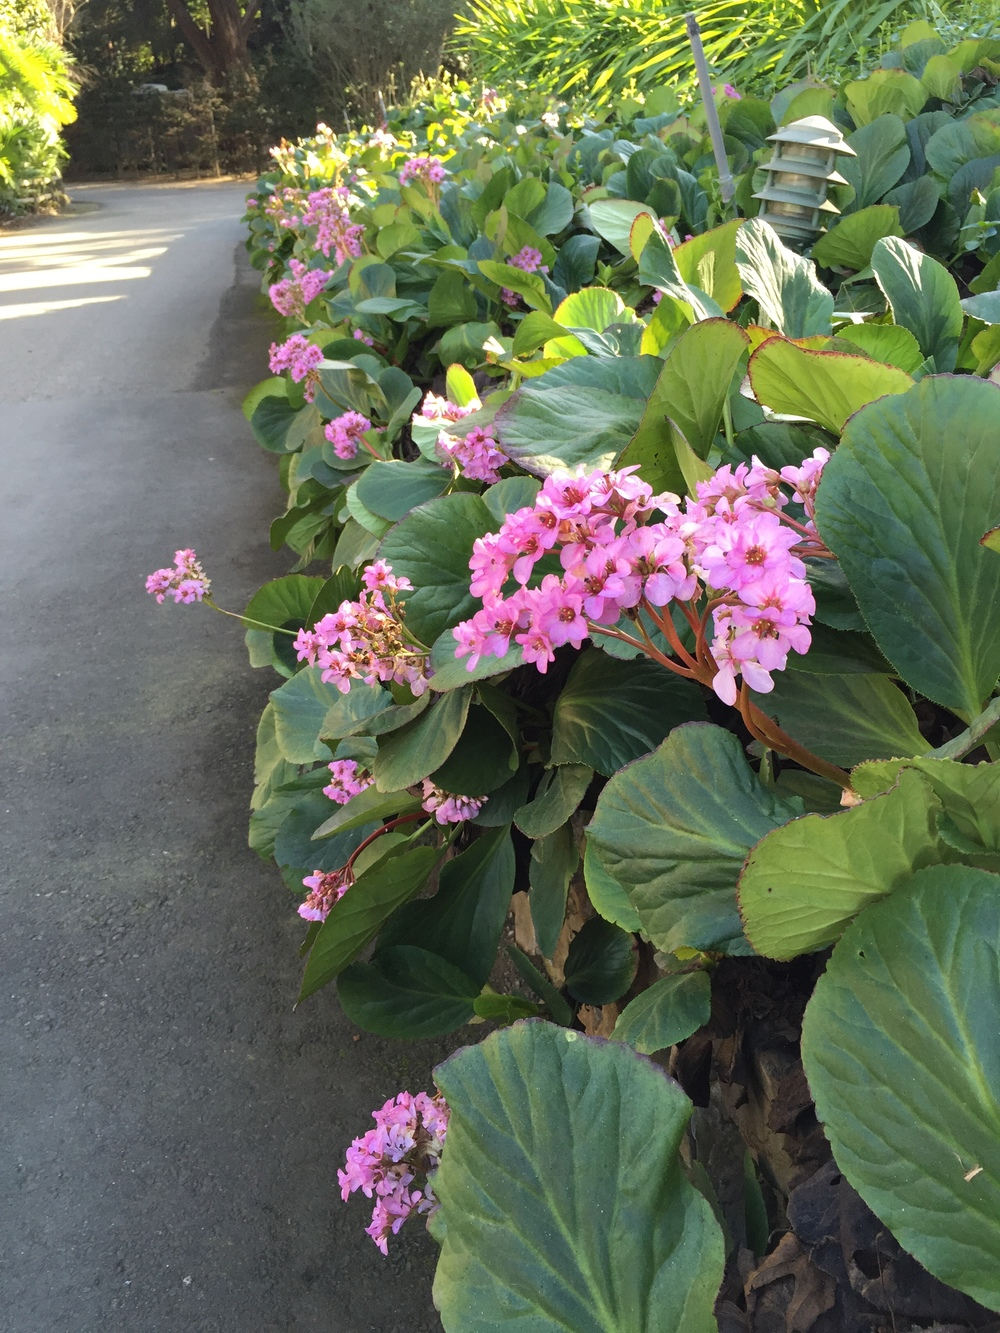 Just some Bergenia along the driveway...